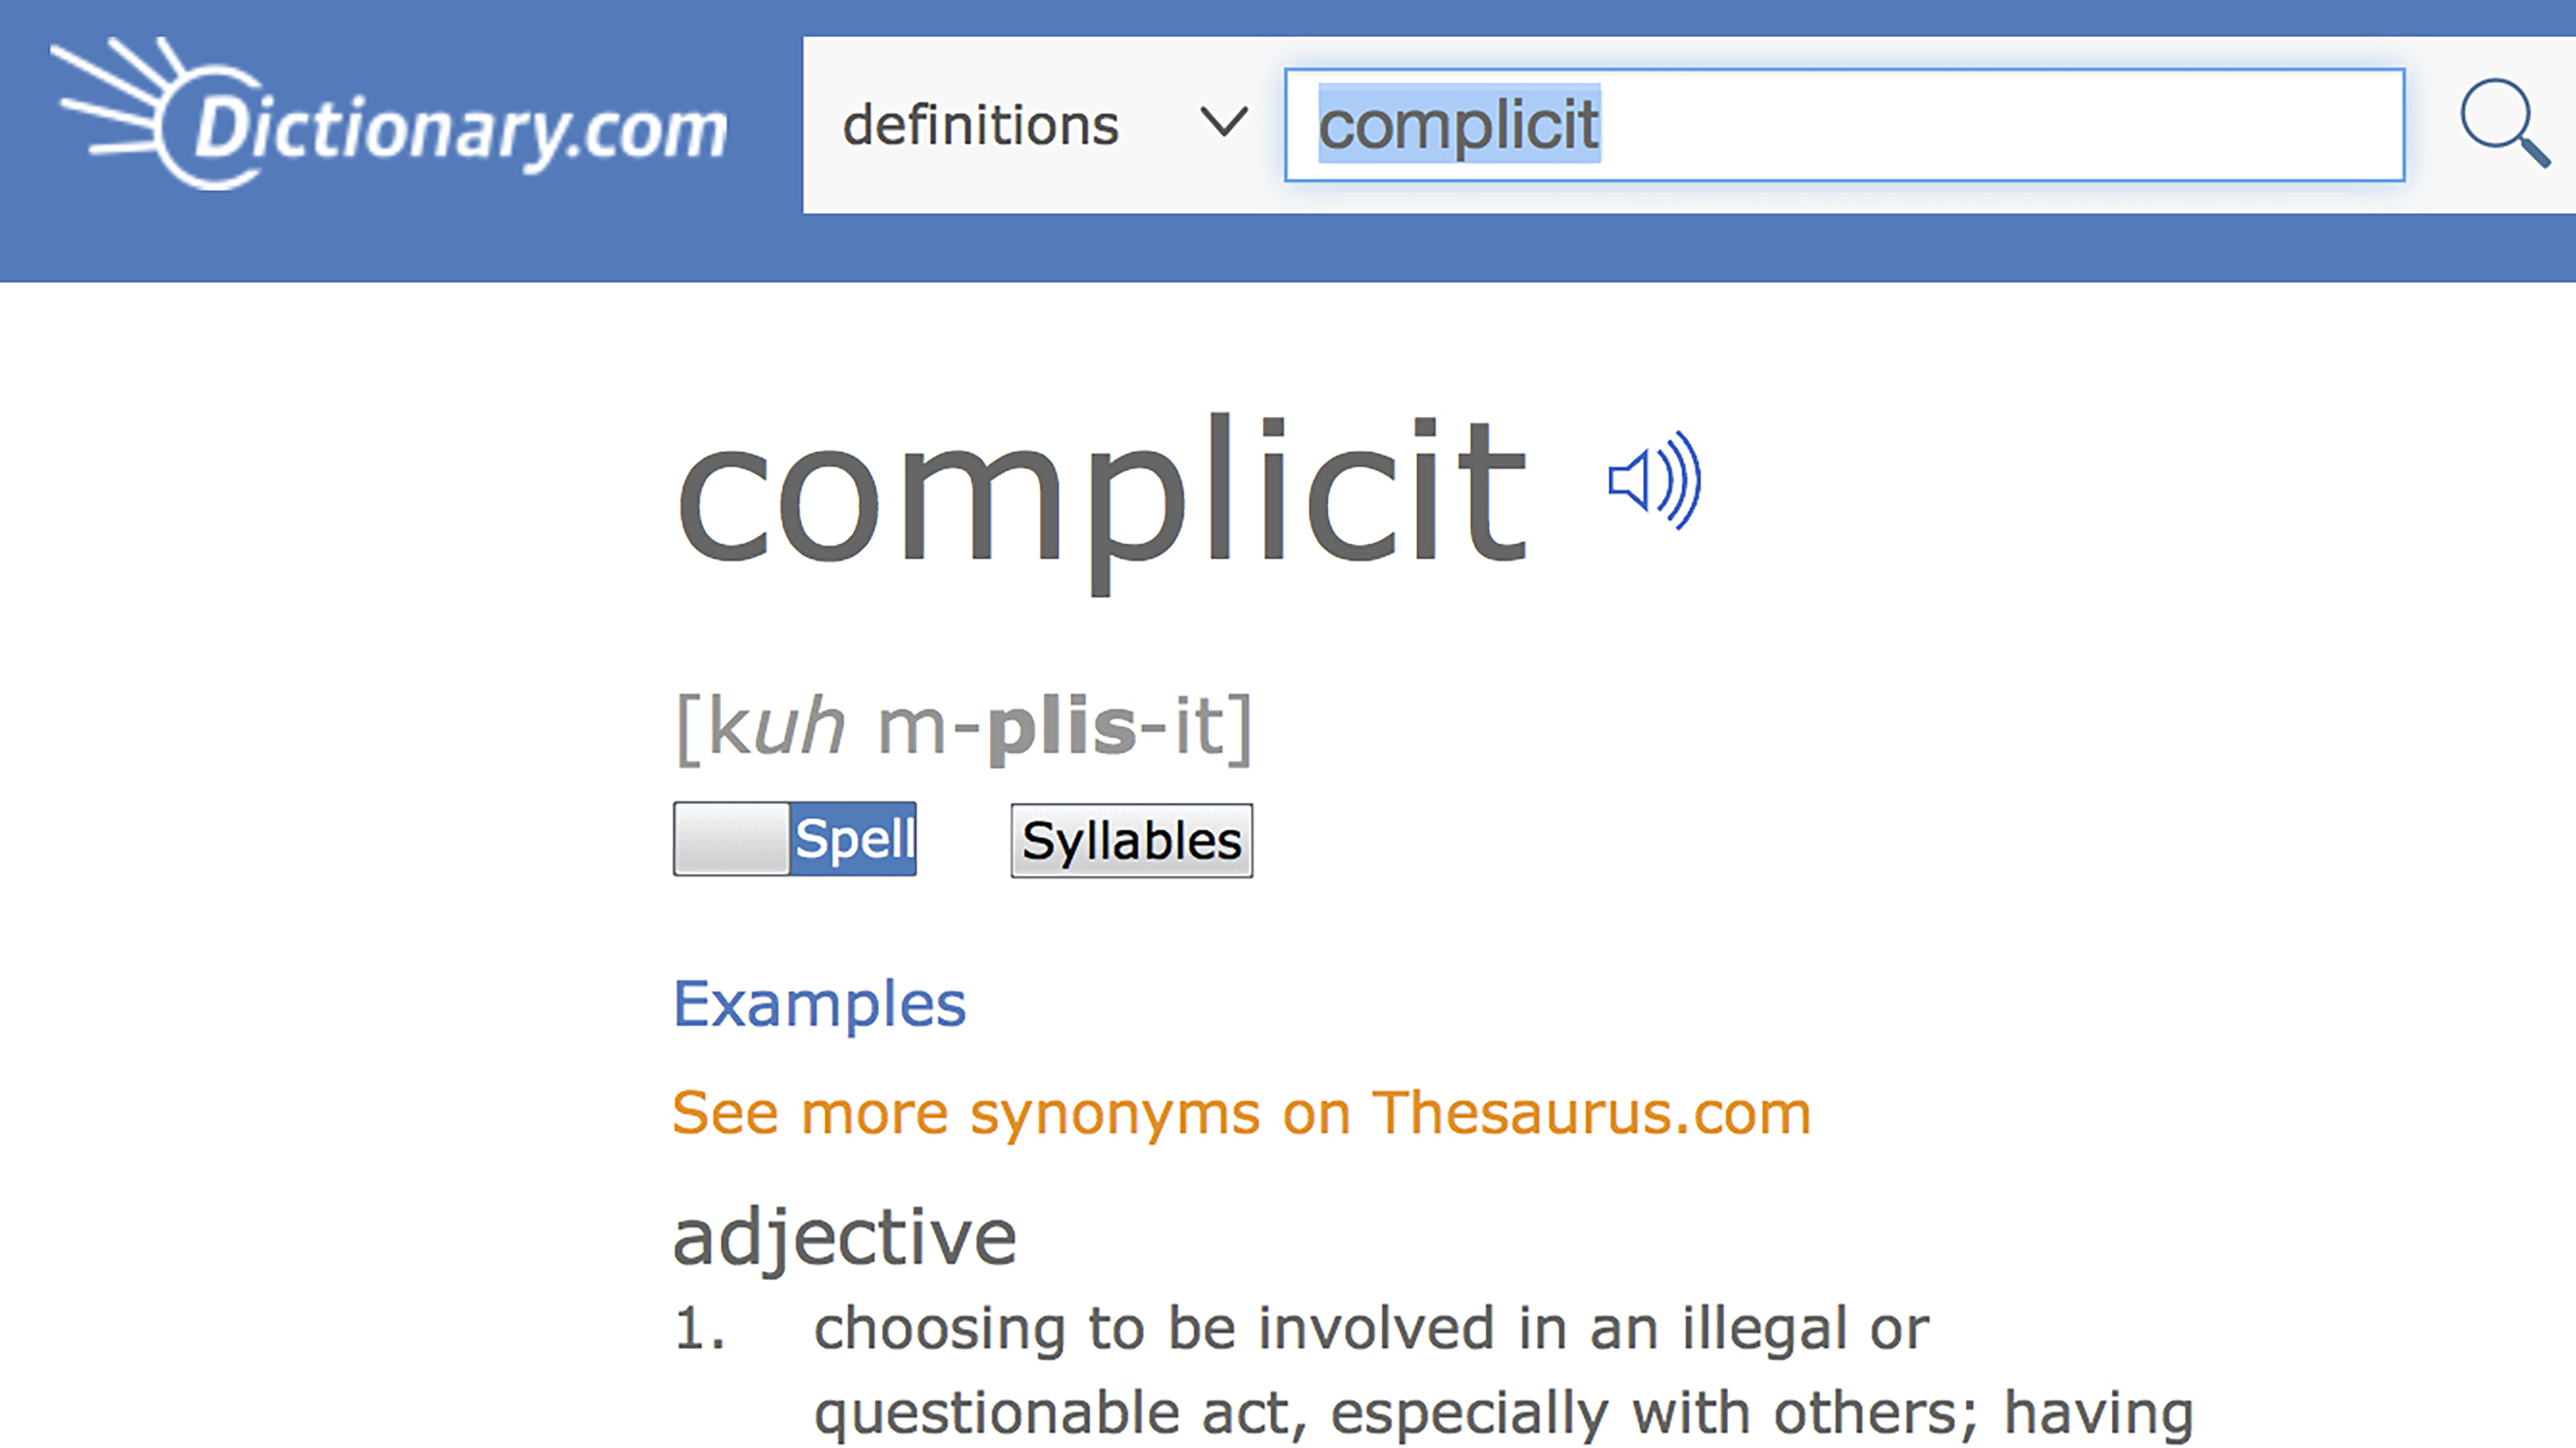 'Complicit' named word of the year by Dictionary.com